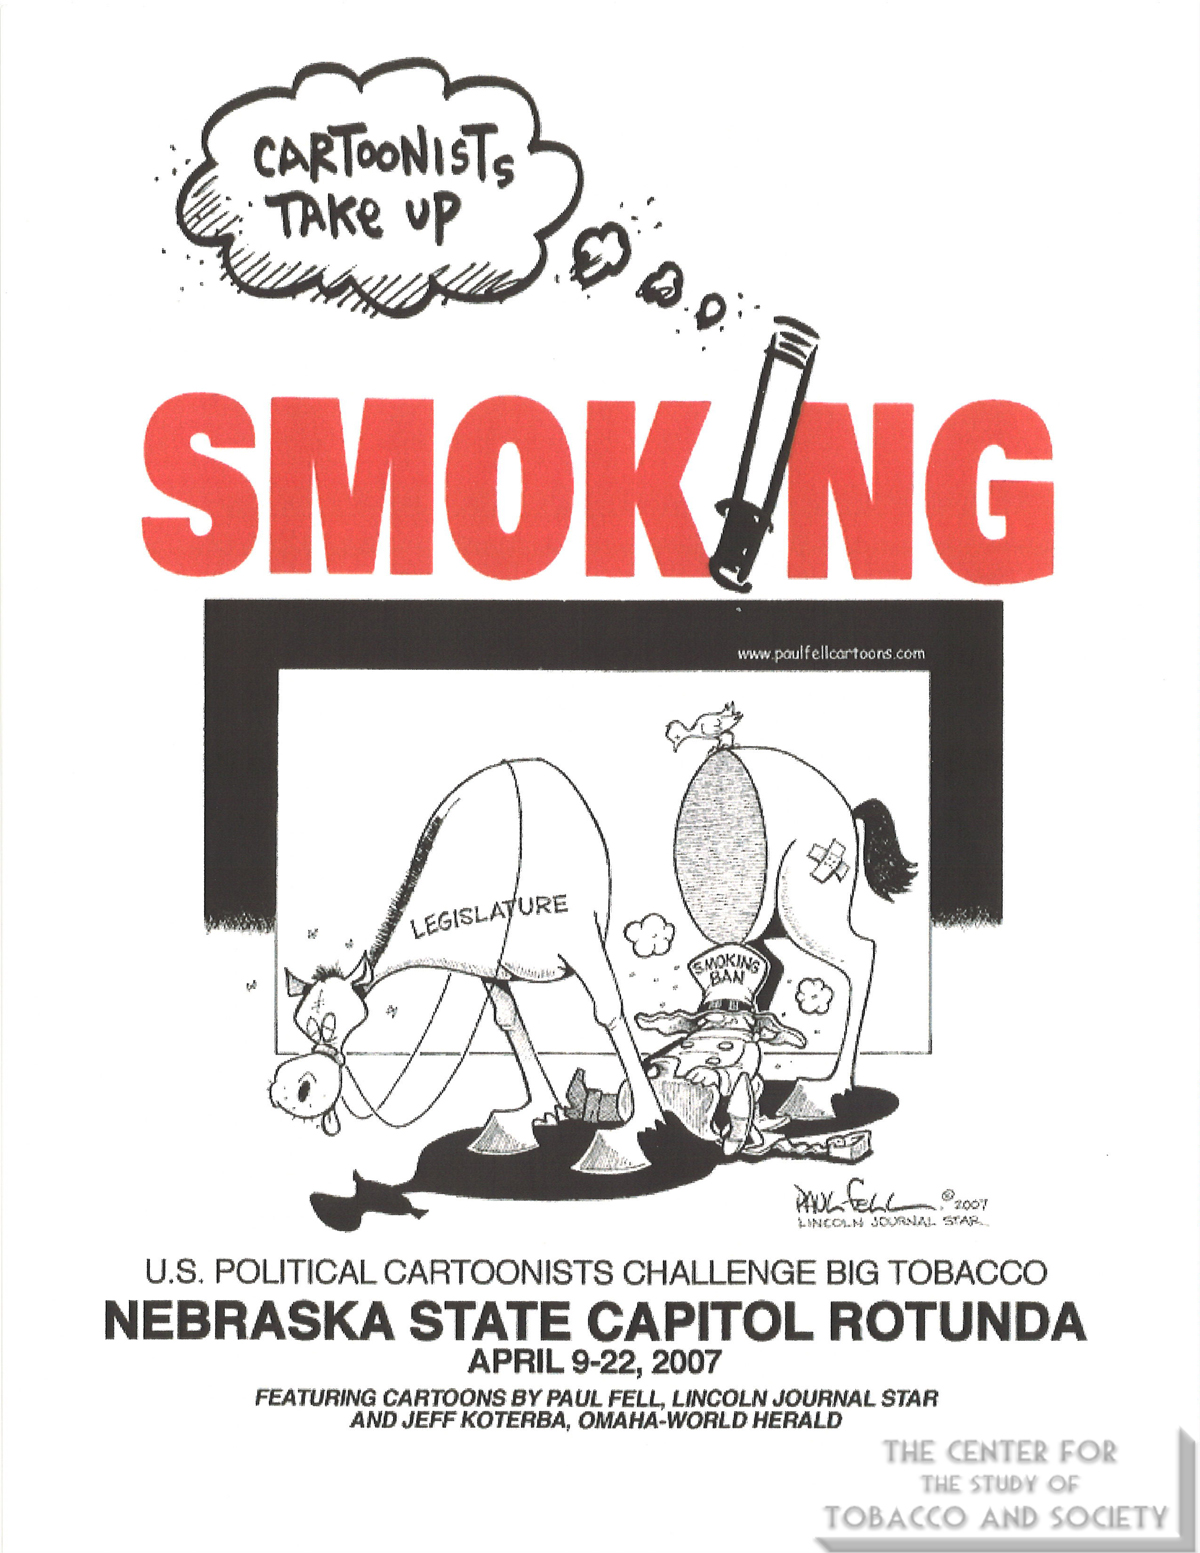 2007 Nebraska State Capitol Rotunda Cartoonists Take Up Smoking